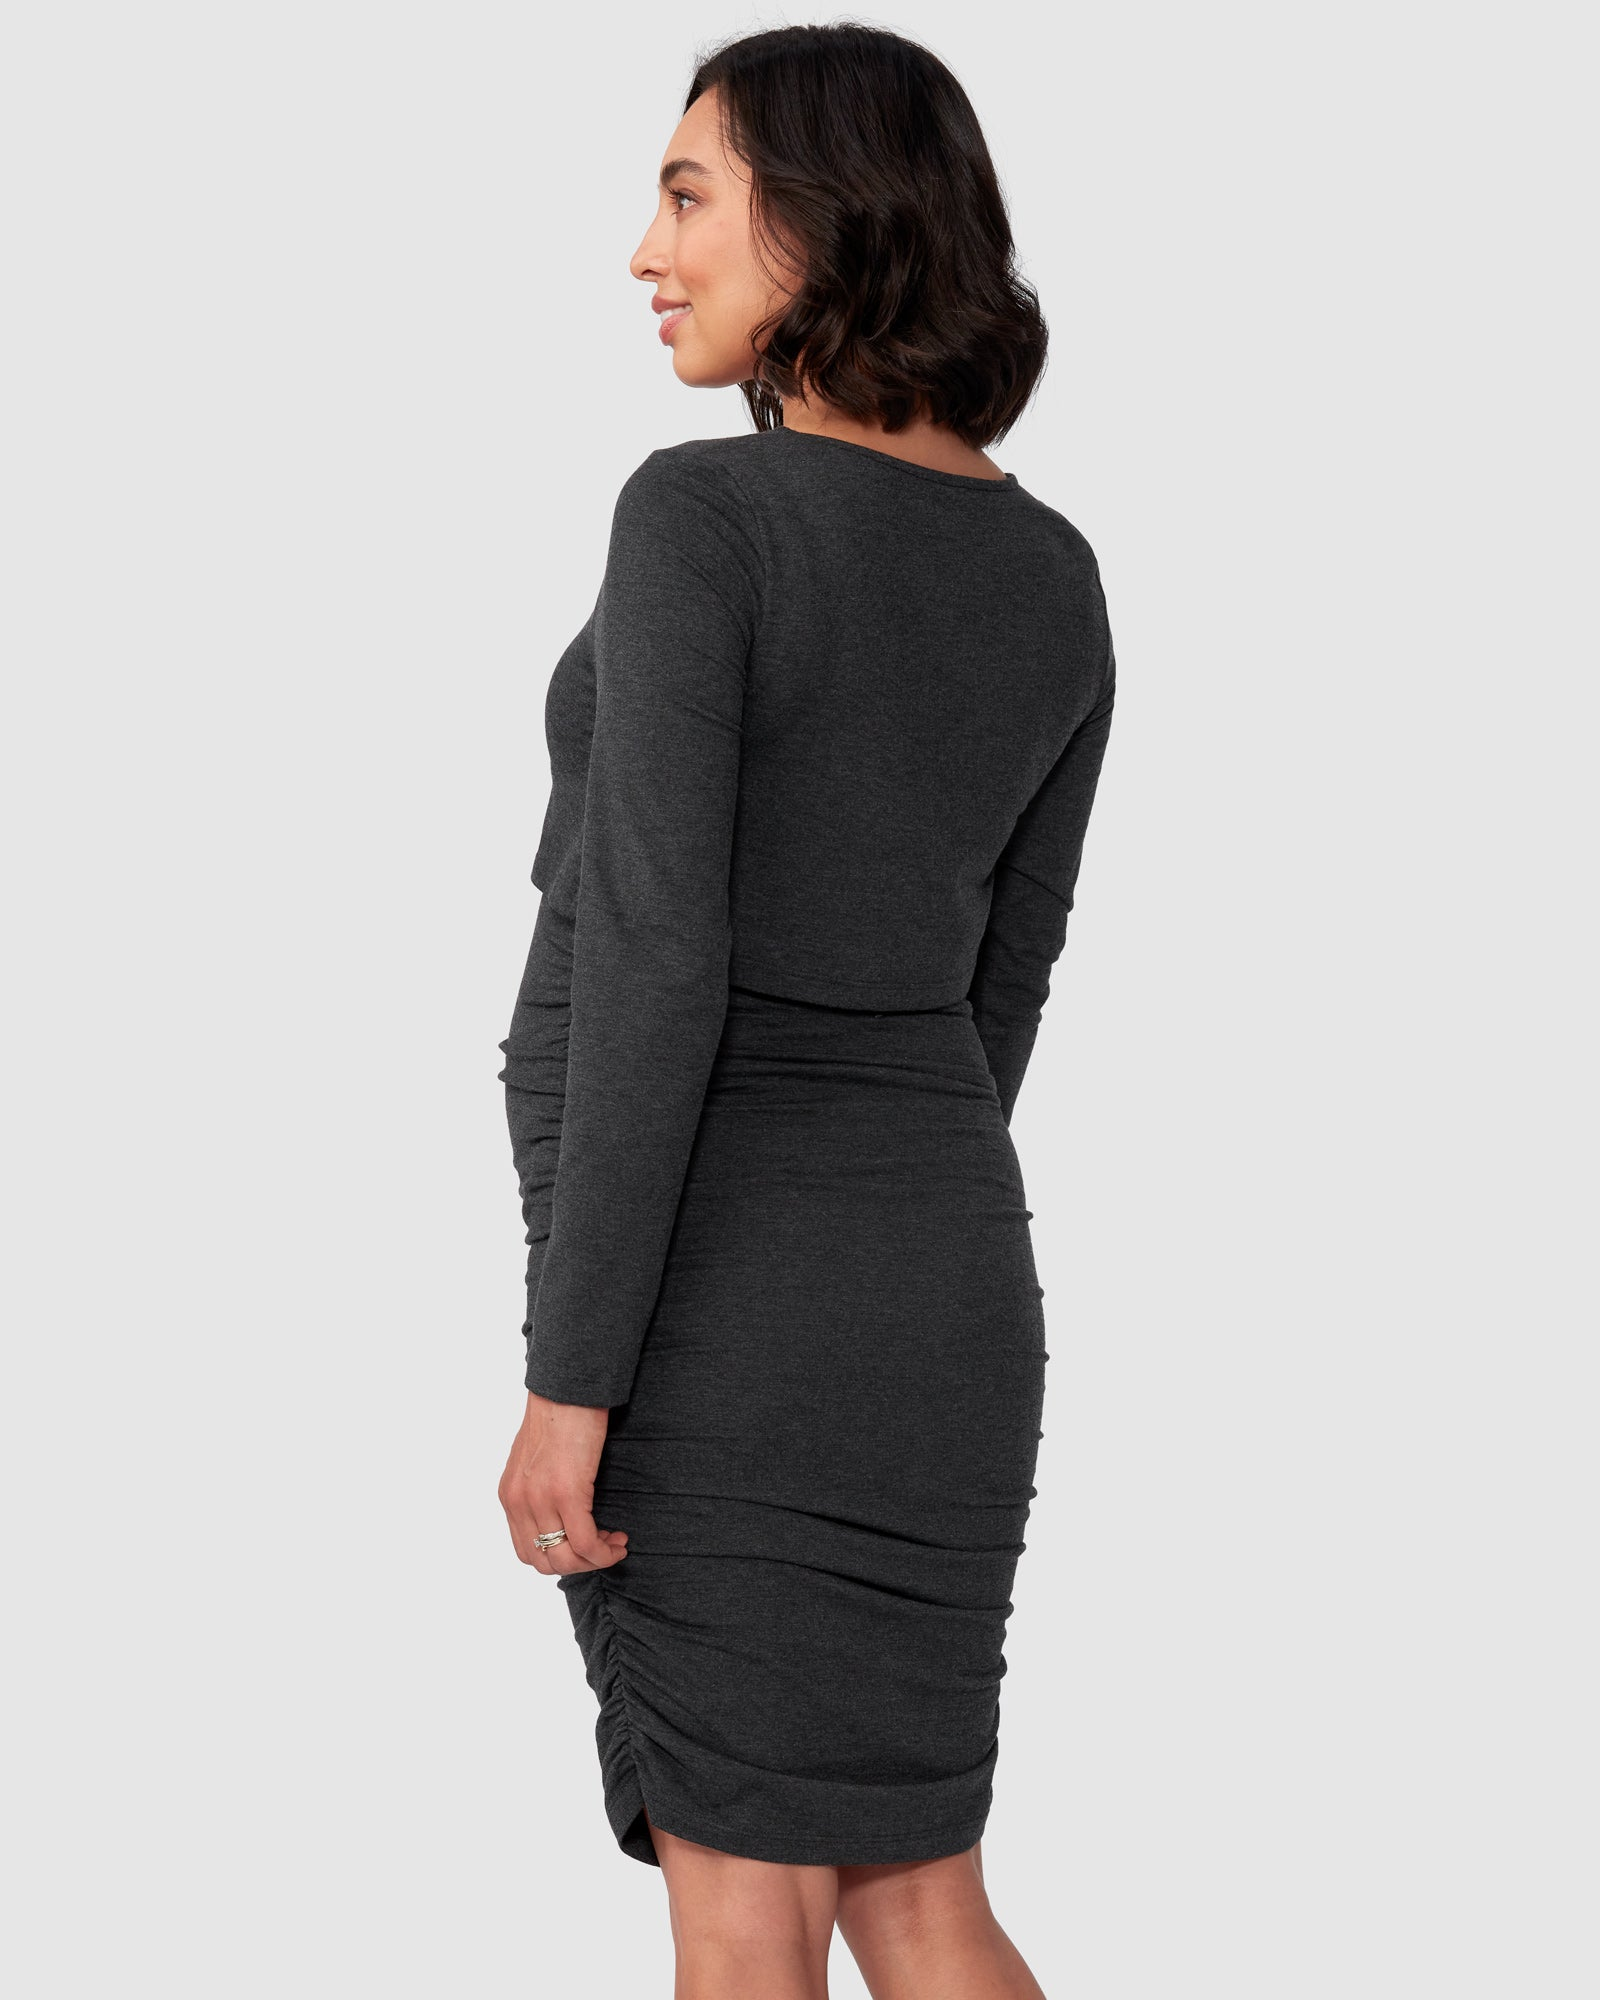 Lindsay Long Sleeve Nursing Dress